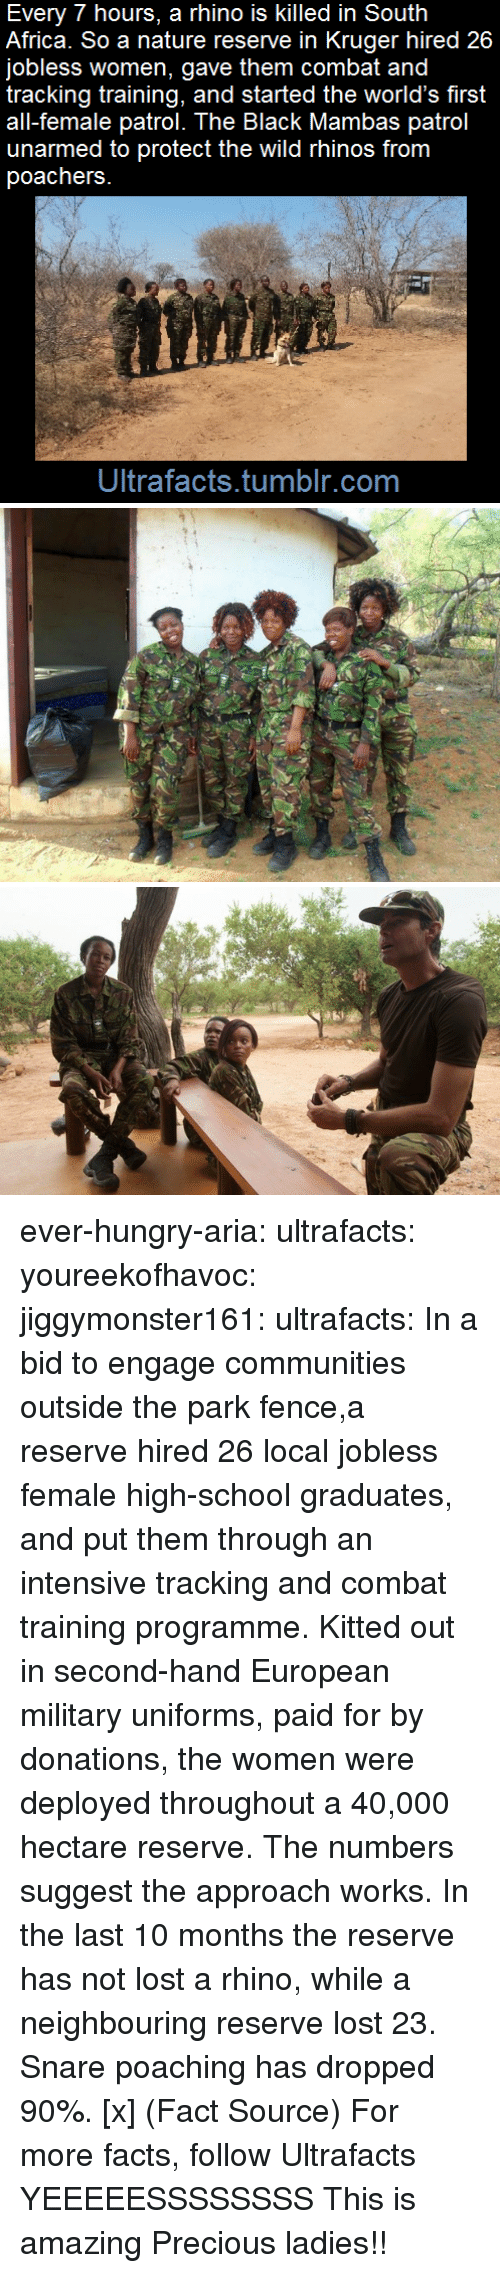 A 40: Every 7 hours, a rhino is killed in South  Africa. So a nature reserve in Kruger hired 26  jobless women, gave them combat and  tracking training, and started the world's first  all-female patrol. The Black Mambas patrol  unarmed to protect the wild rhinos from  poachers  Ultrafacts.tumblr.com ever-hungry-aria:  ultrafacts:  youreekofhavoc:  jiggymonster161:  ultrafacts:    In a bid to engage communities outside the park fence,a reserve hired 26 local jobless female high-school graduates, and put them through an intensive tracking and combat training programme. Kitted out in second-hand European military uniforms, paid for by donations, the women were deployed throughout a 40,000 hectare reserve.   The numbers suggest the approach works. In the last 10 months the reserve has not lost a rhino, while a neighbouring reserve lost 23. Snare poaching has dropped 90%. [x]   (Fact Source) For more facts, follow Ultrafacts     YEEEEESSSSSSSS  This is amazing     Precious ladies!!